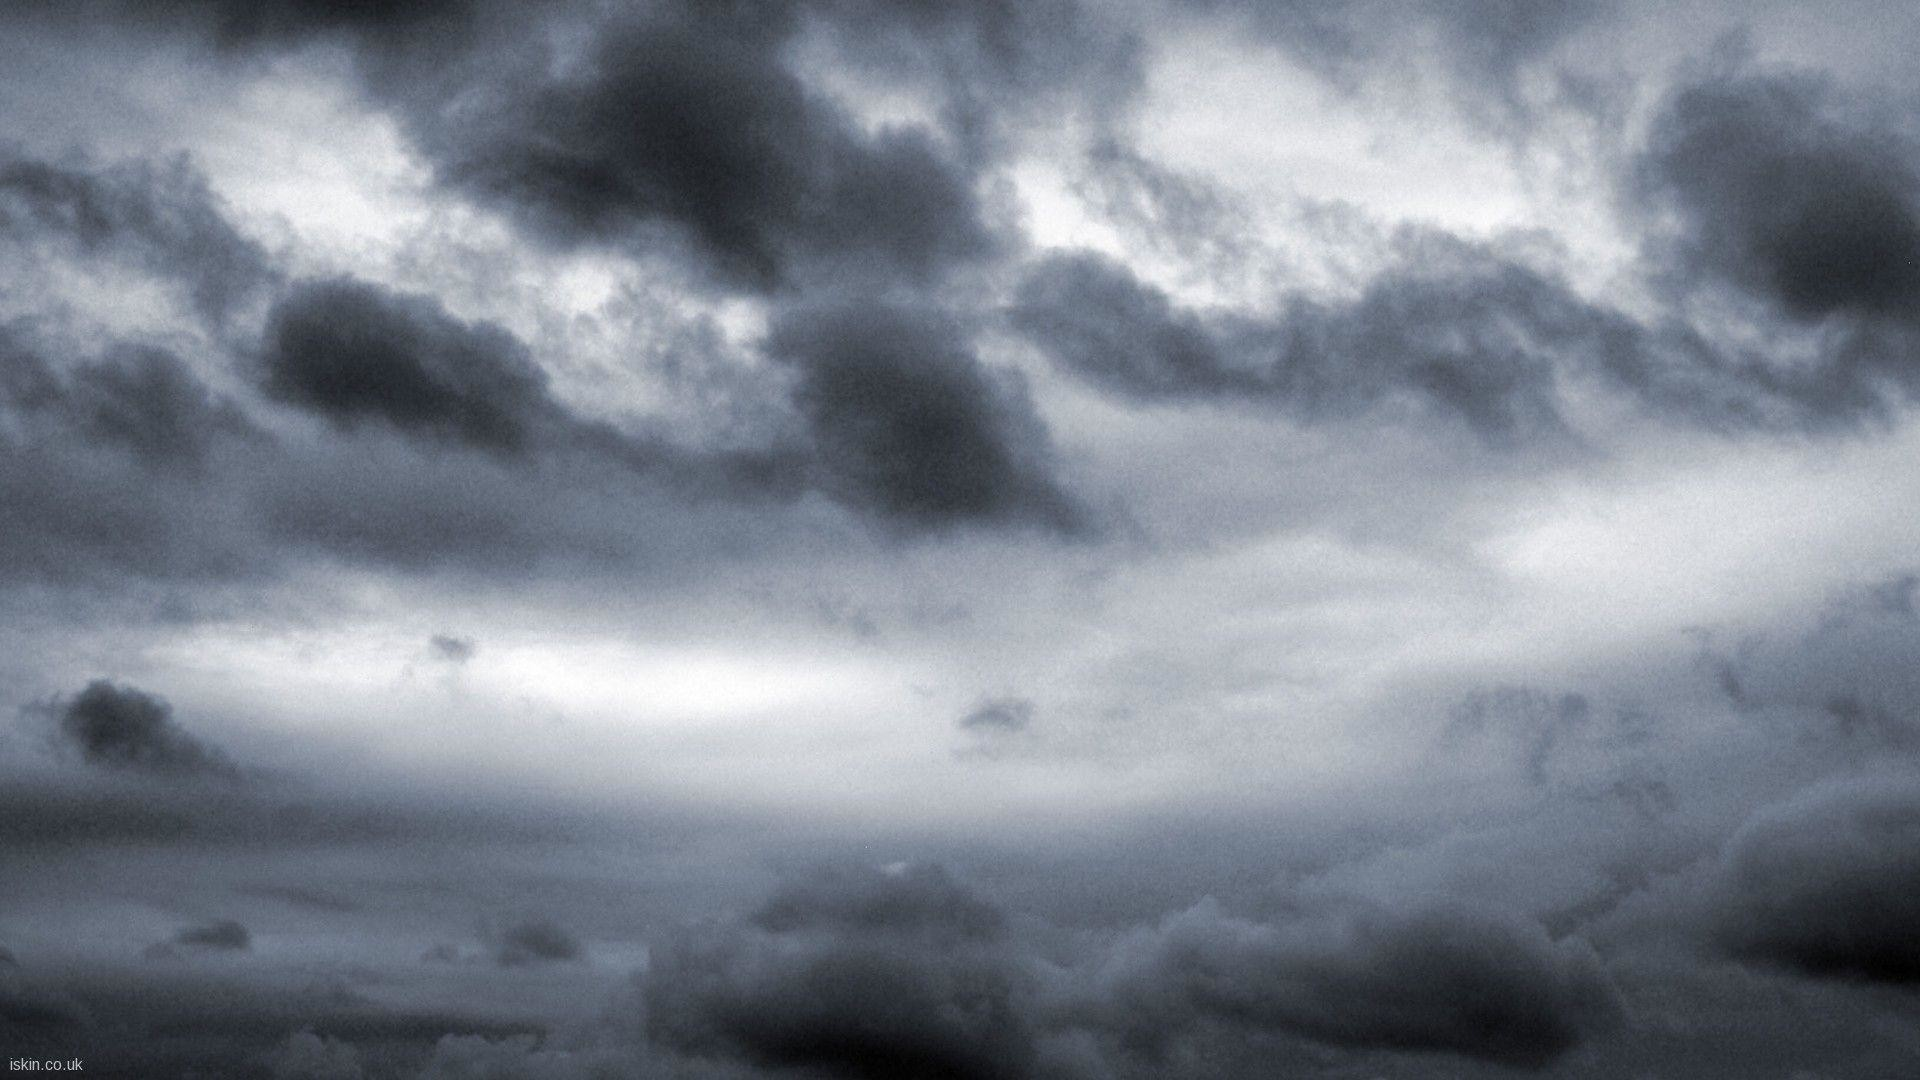 1920x1080 Stormy Sky Wallpaper 42966 High Resolution | download all free jpeg